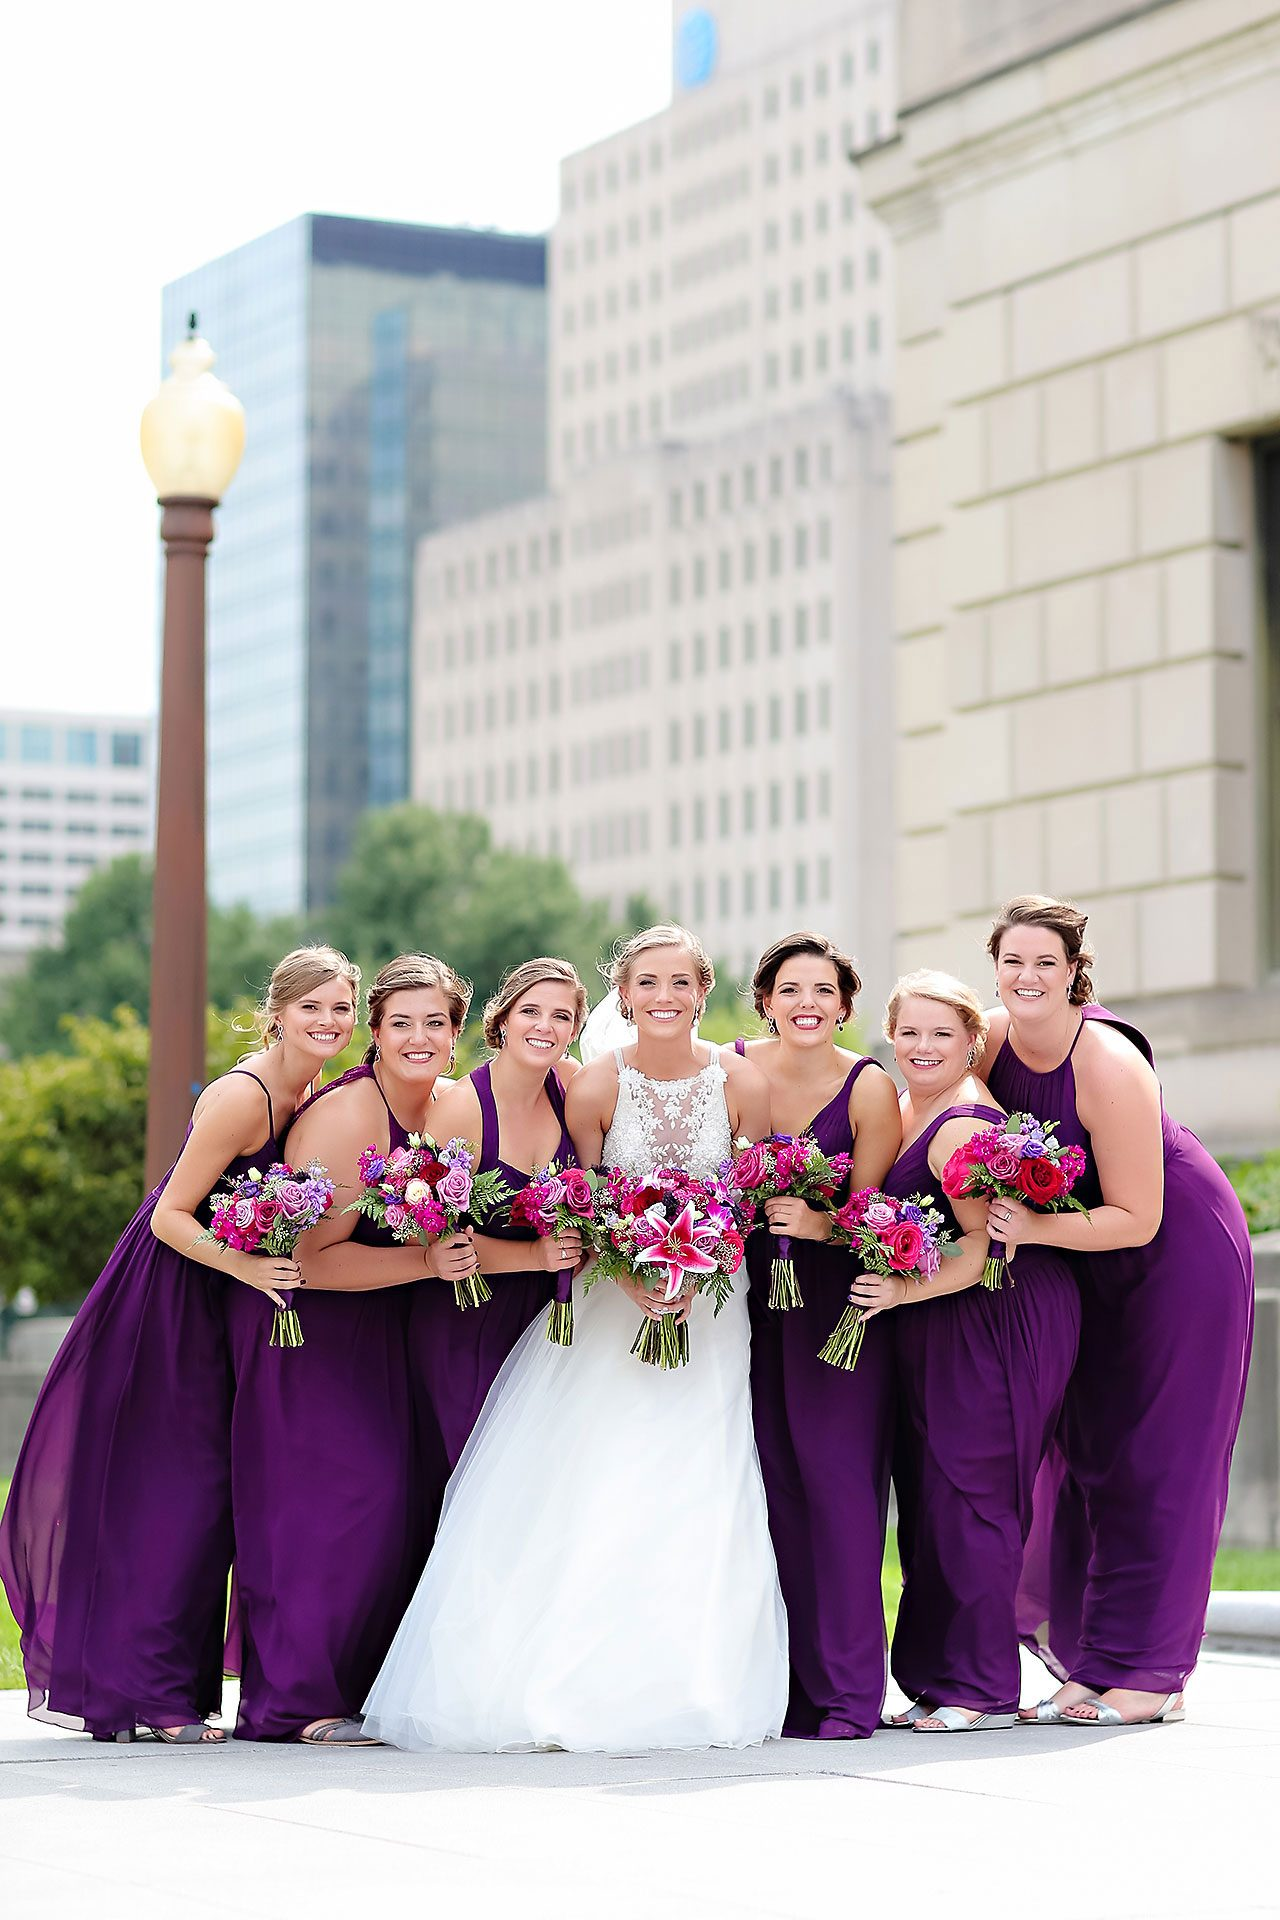 Serra Alex Regions Tower Indianapolis Wedding 087 watermarked